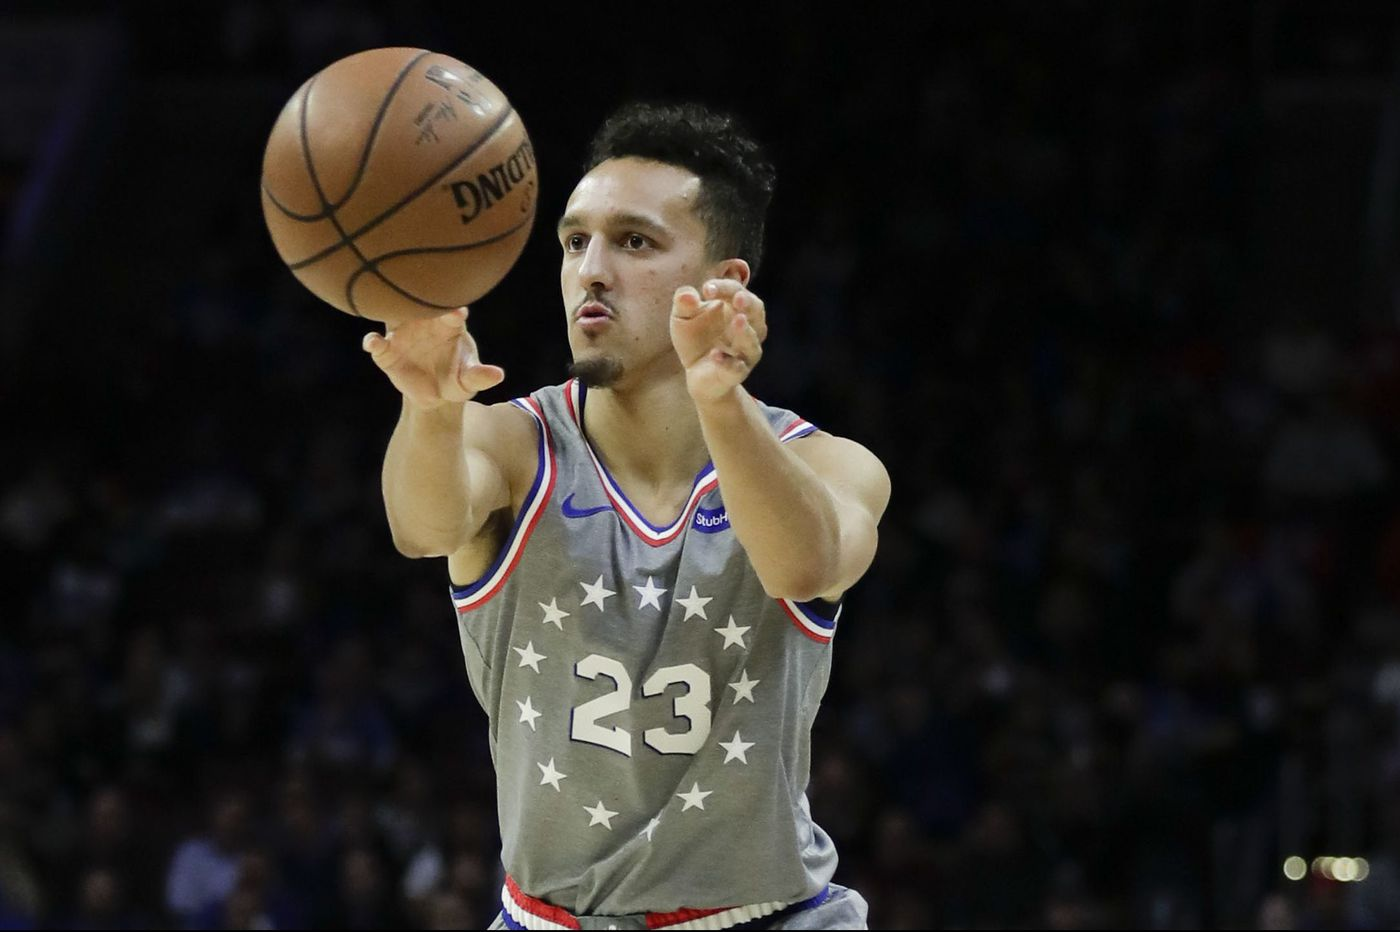 Sixers rookie Landry Shamet is playing wise beyond his years